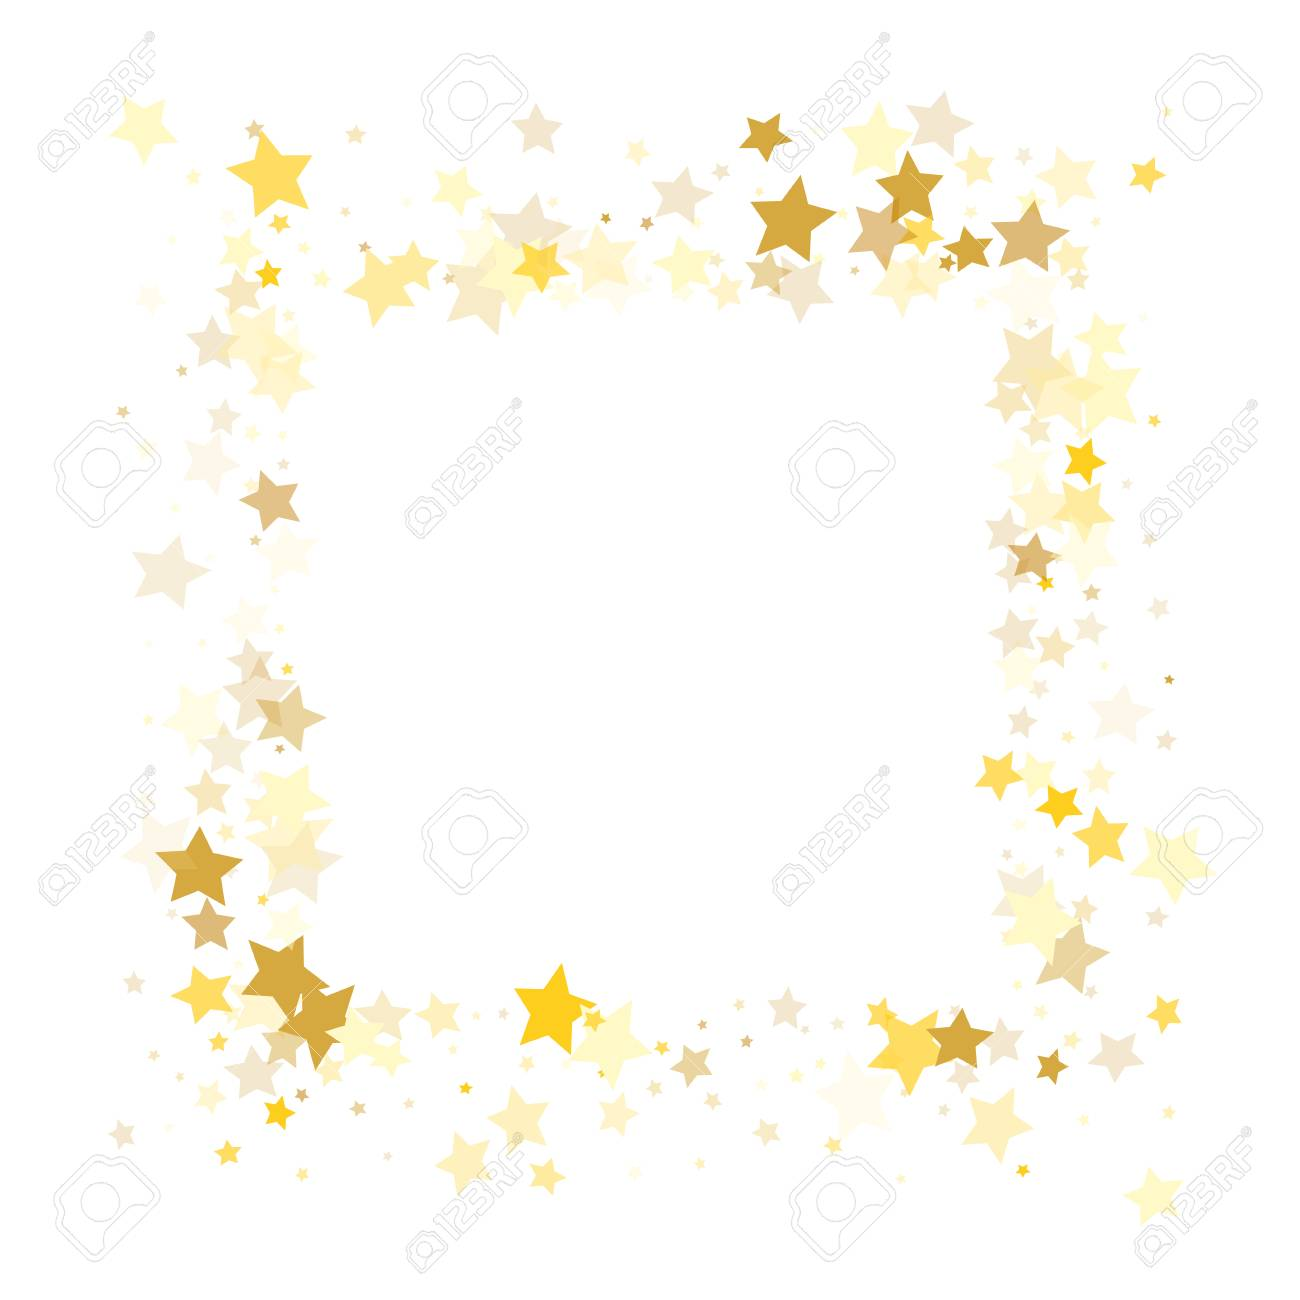 banco de imagens random falling golden stars on honologram background magic flying stars confetti banner greeting card christmas and new year card